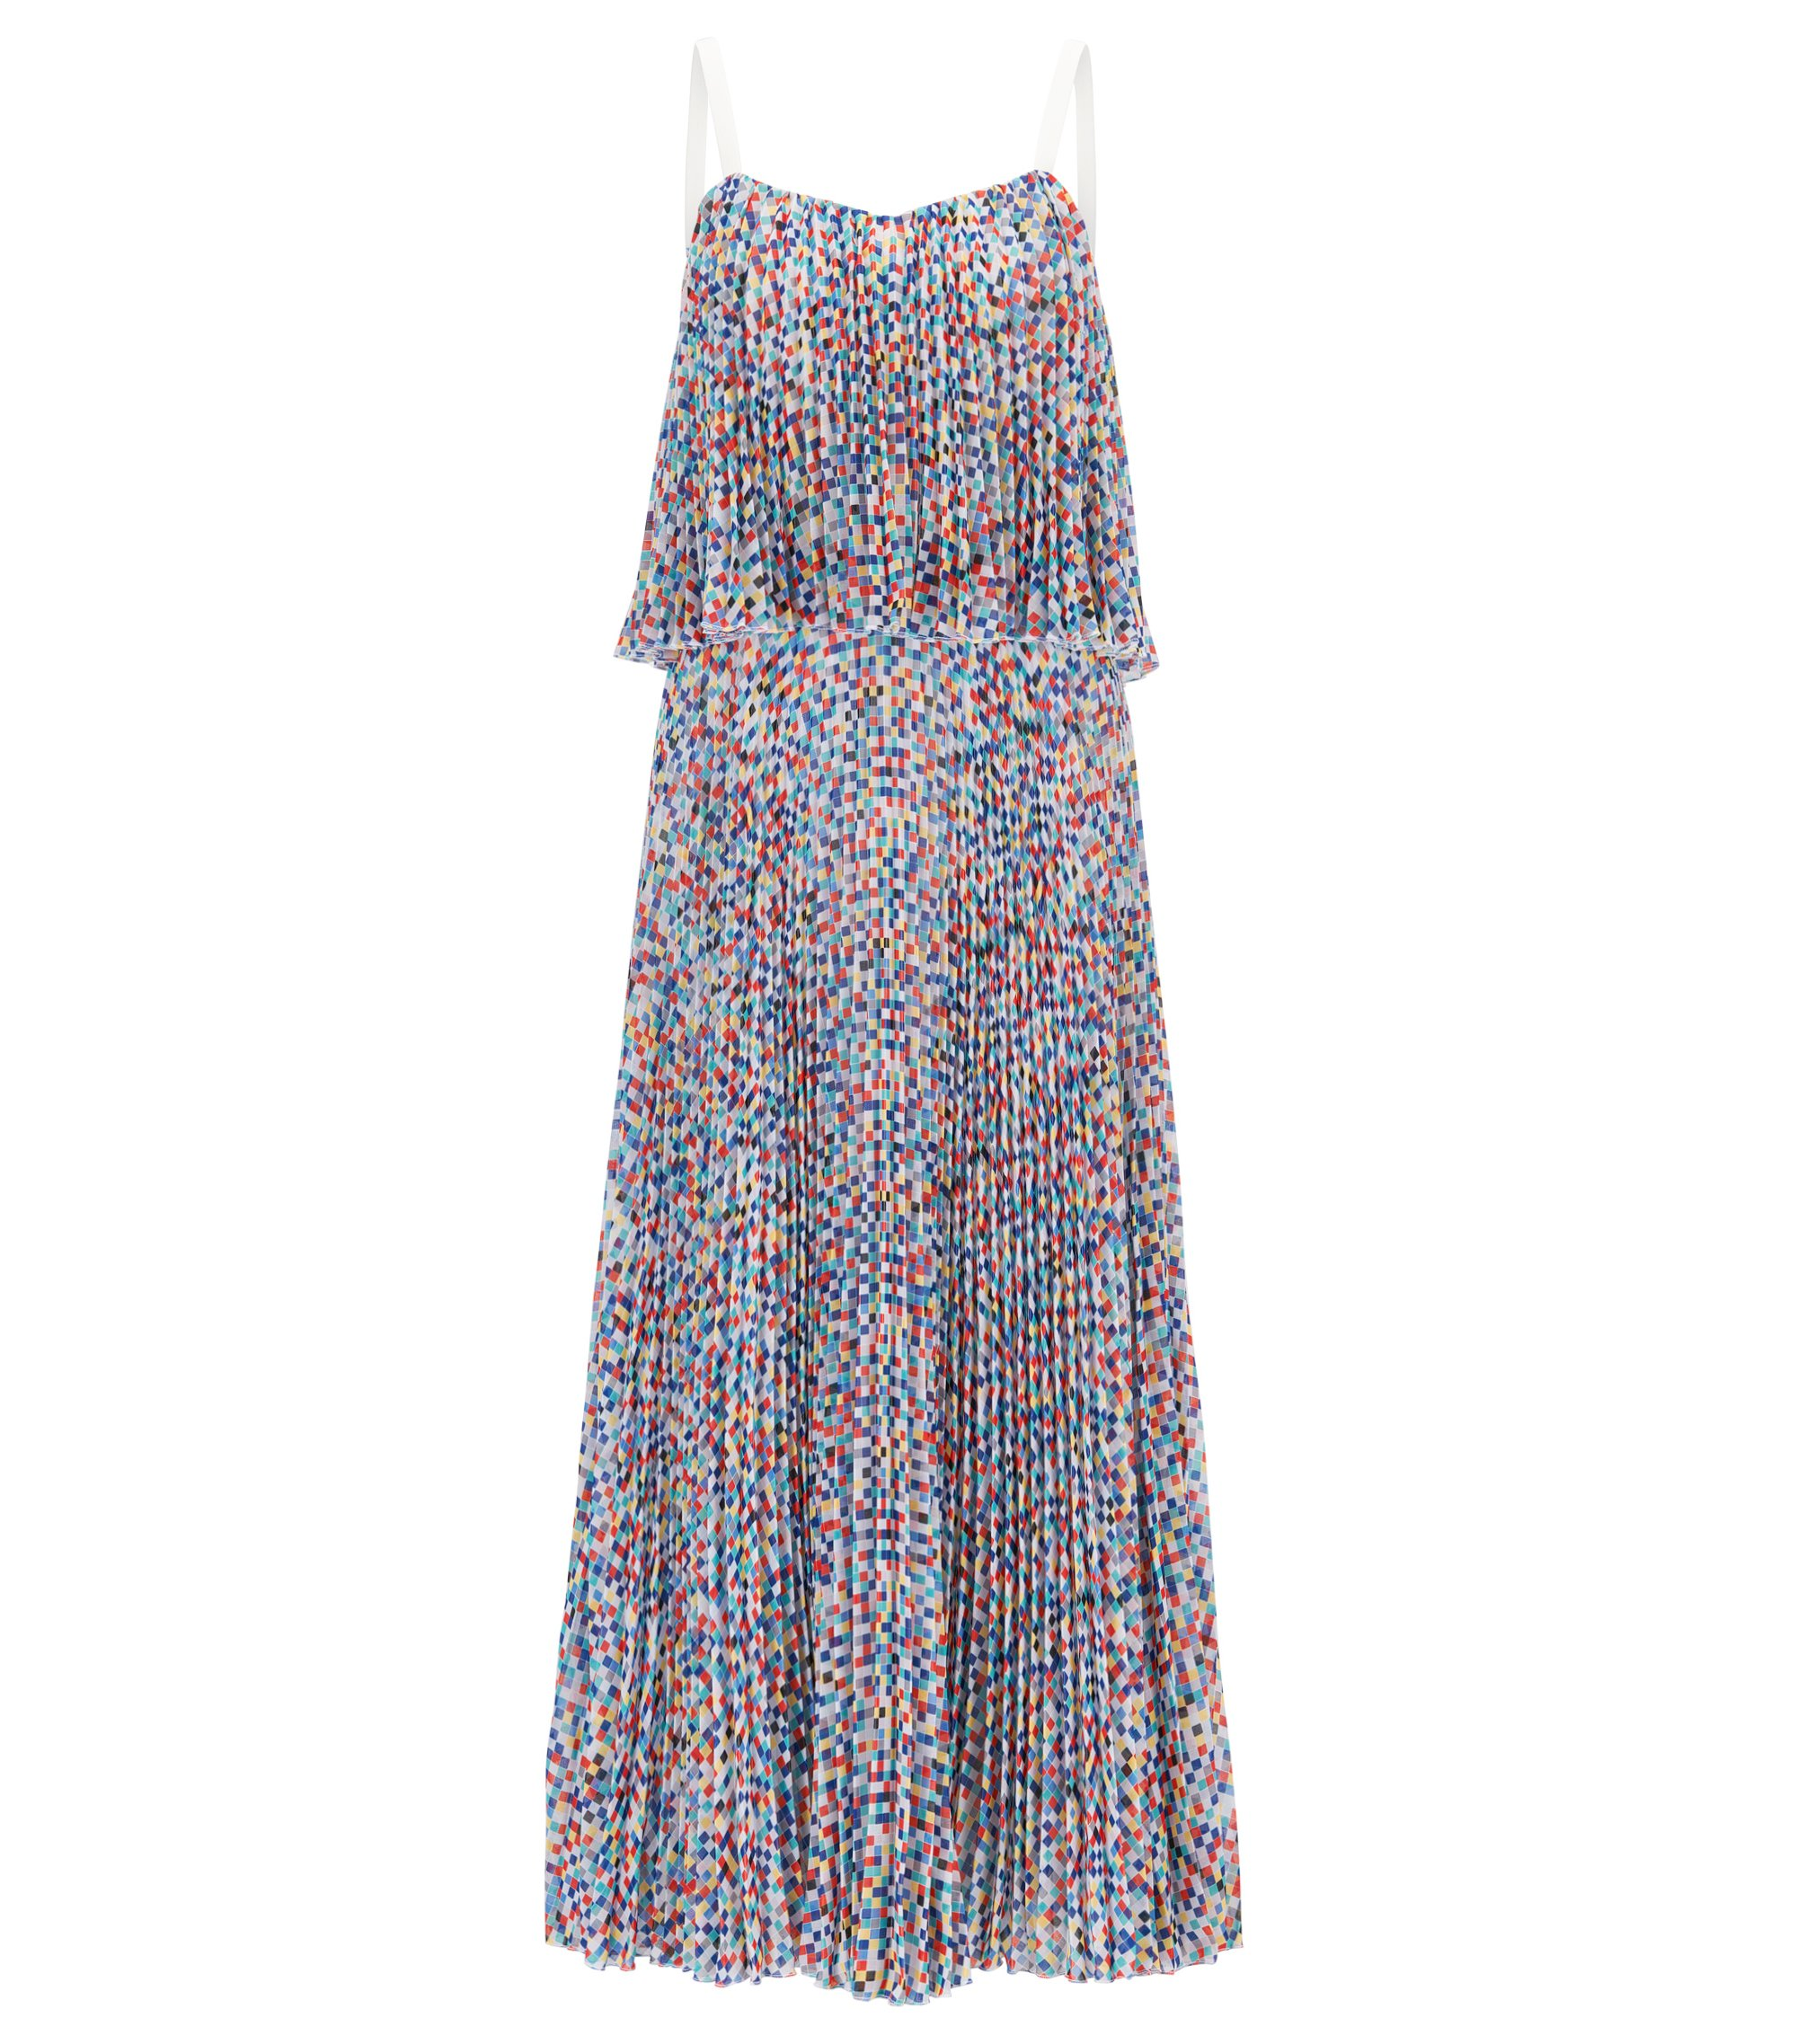 Gallery Collection layered dress with plissé skirt, Patterned